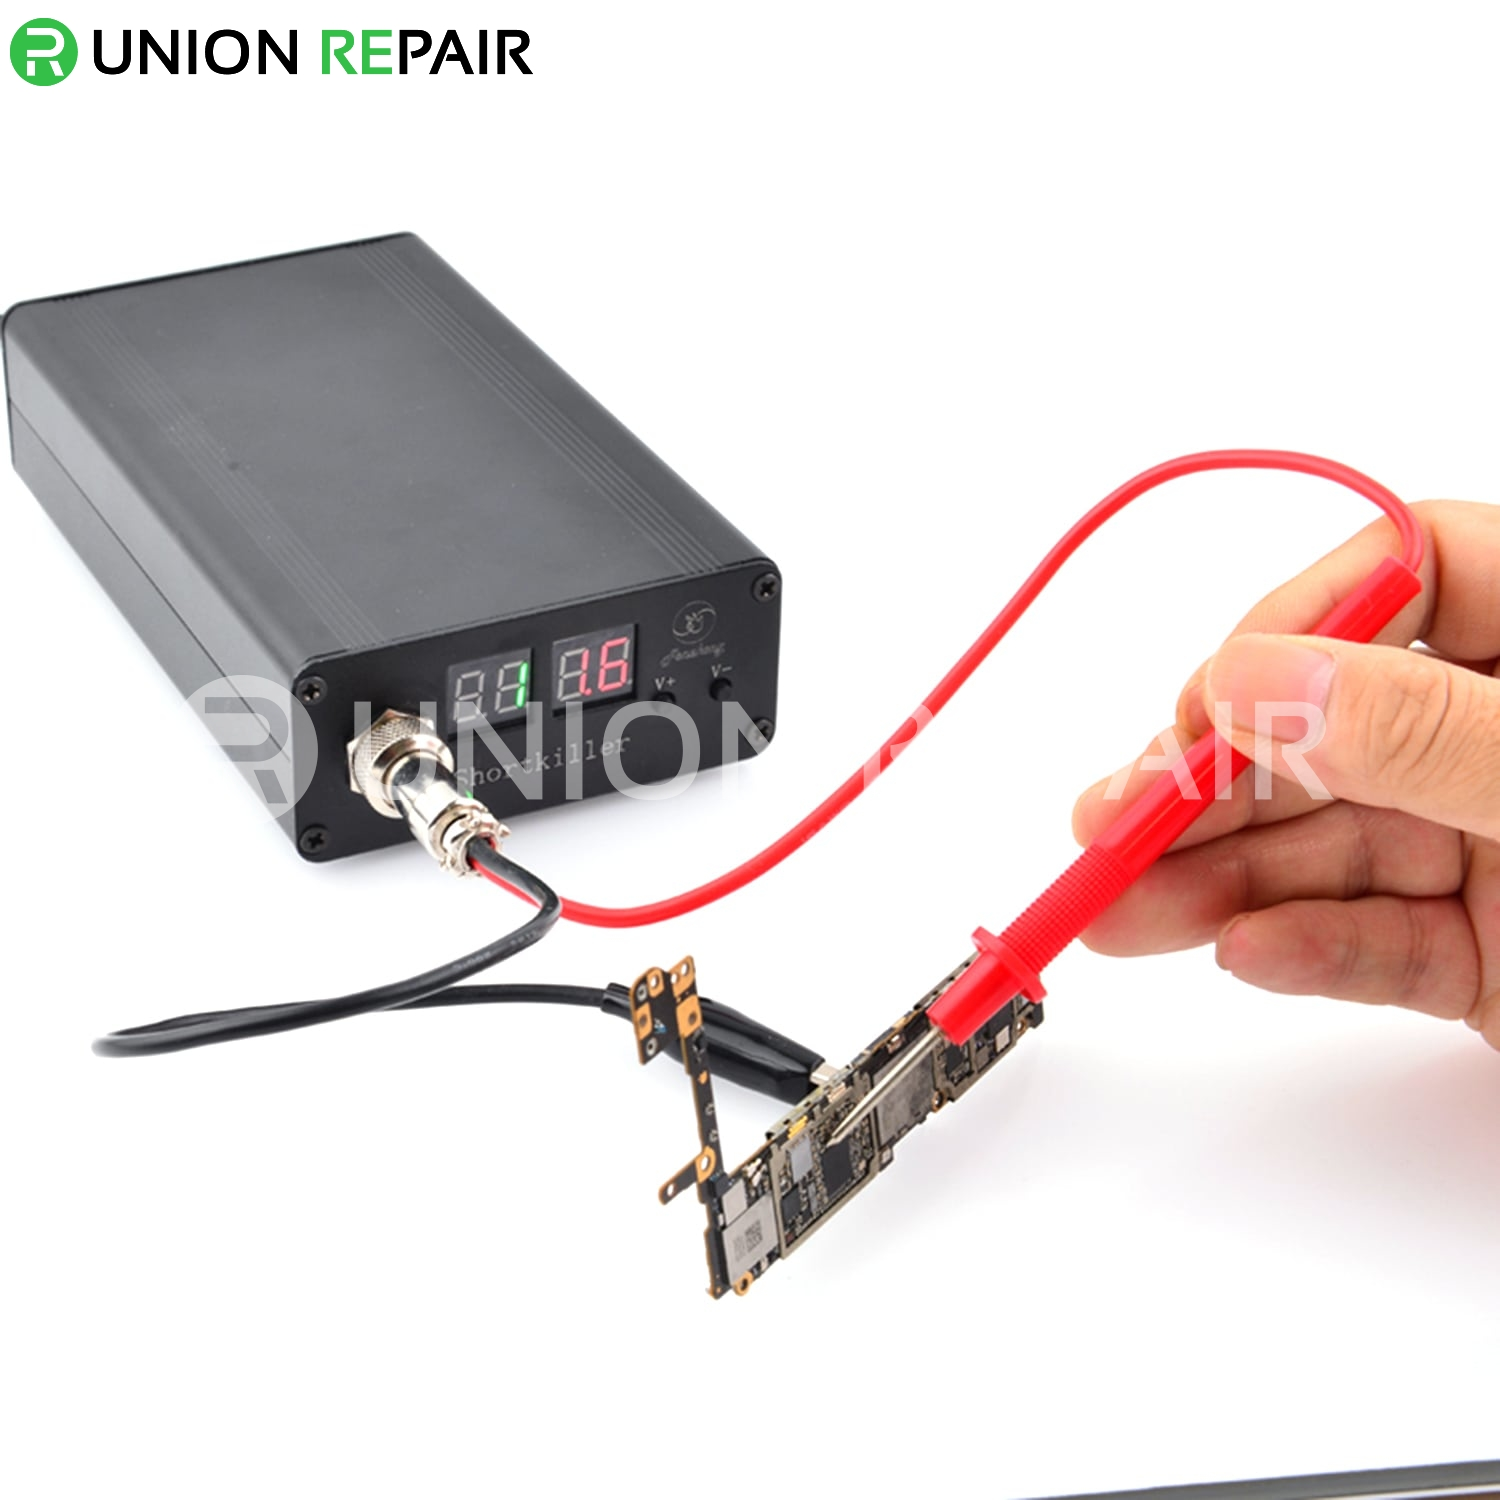 FoneKong ShortKiller Phoneboard PCB Circuit Detection Repair Tool